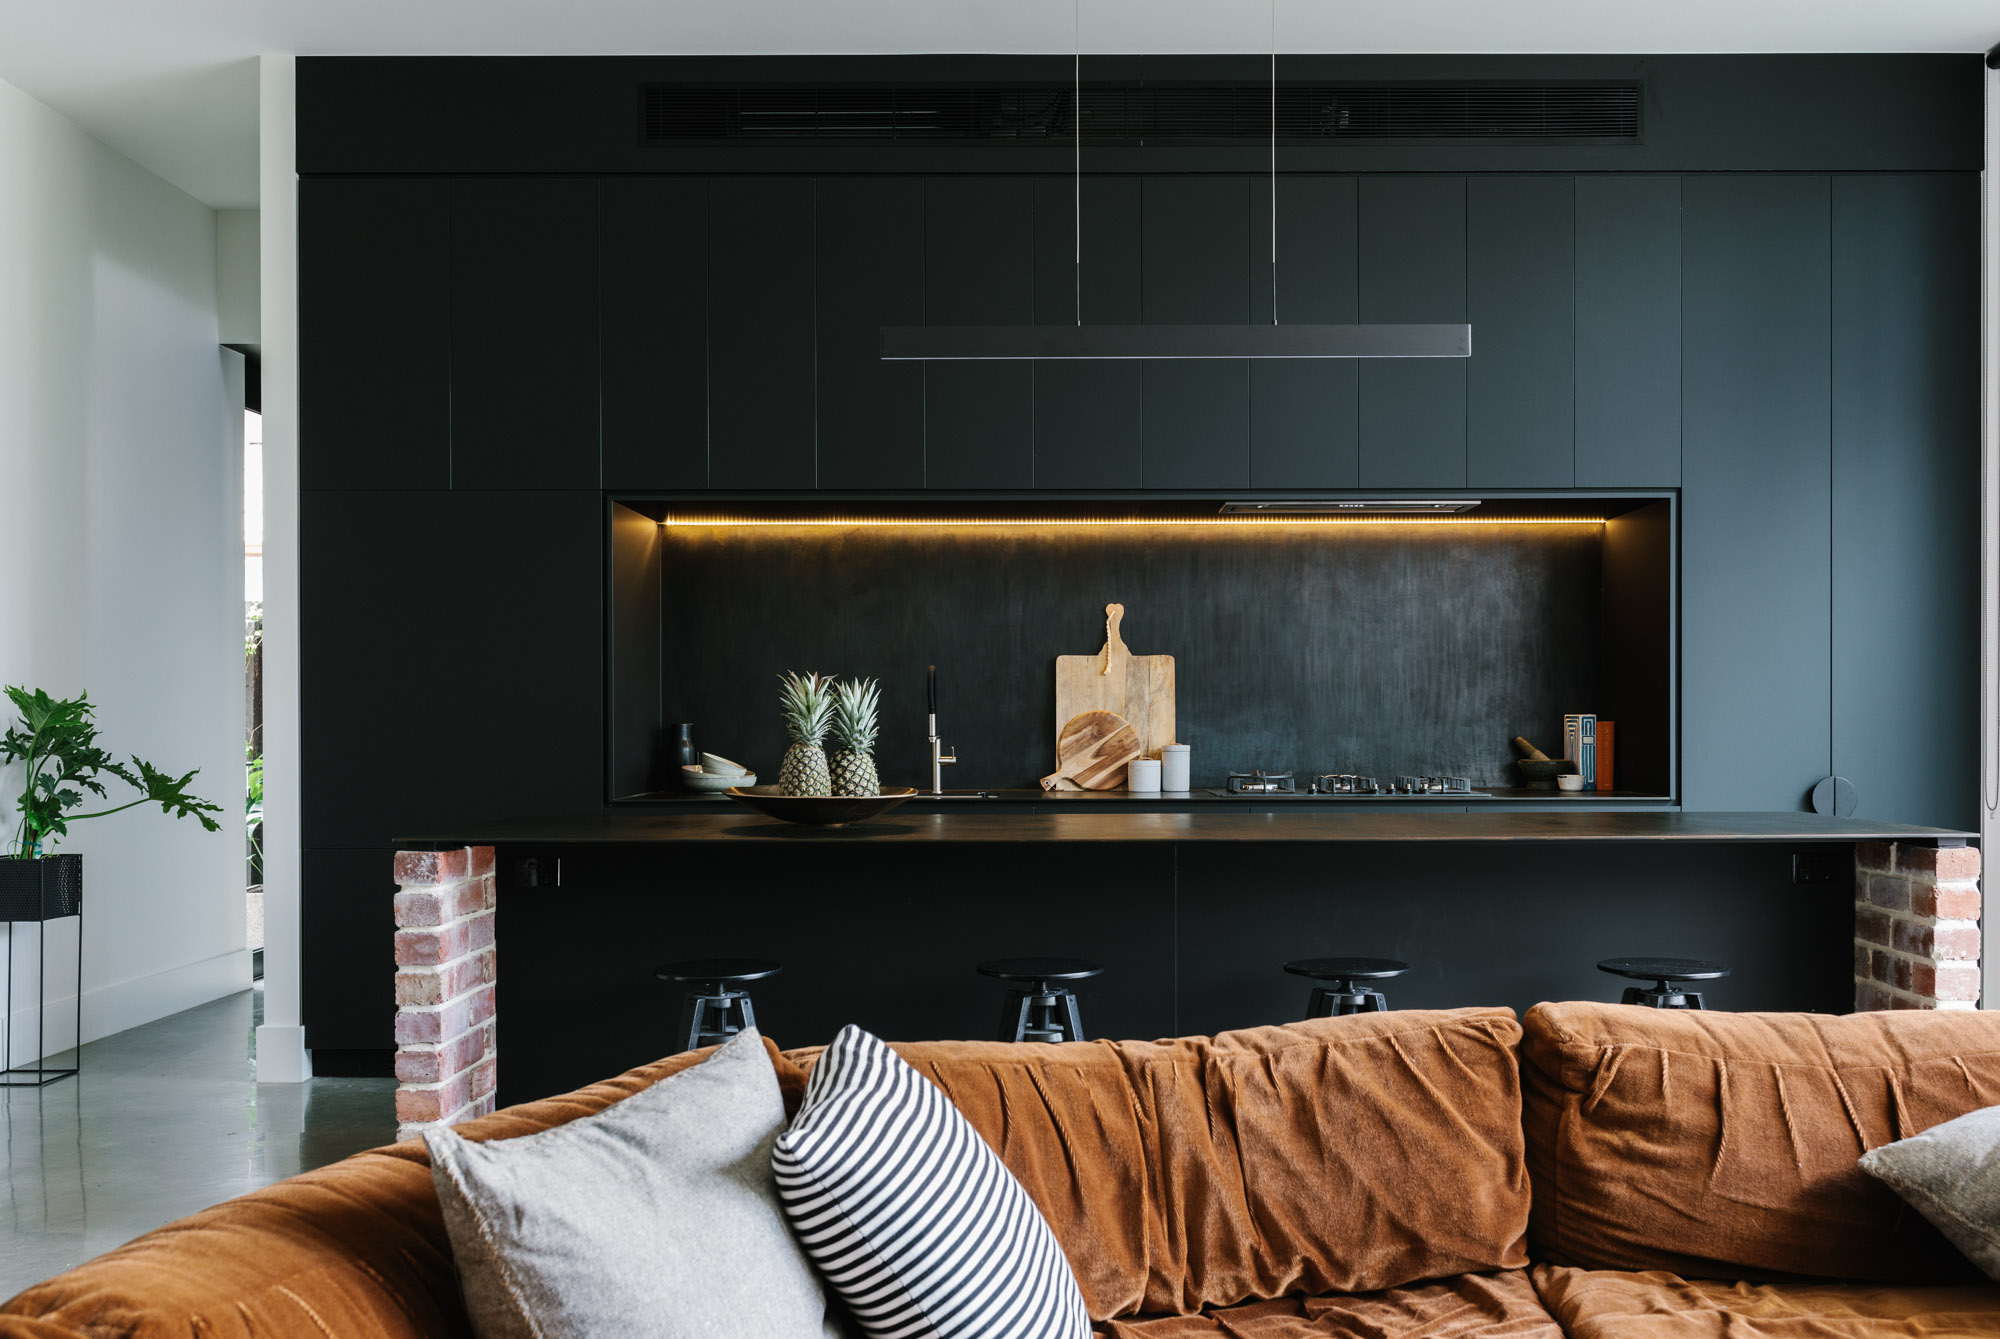 Melbourne interior photographer, Marnie Hawson, for MLS Built. Styled by TRES.